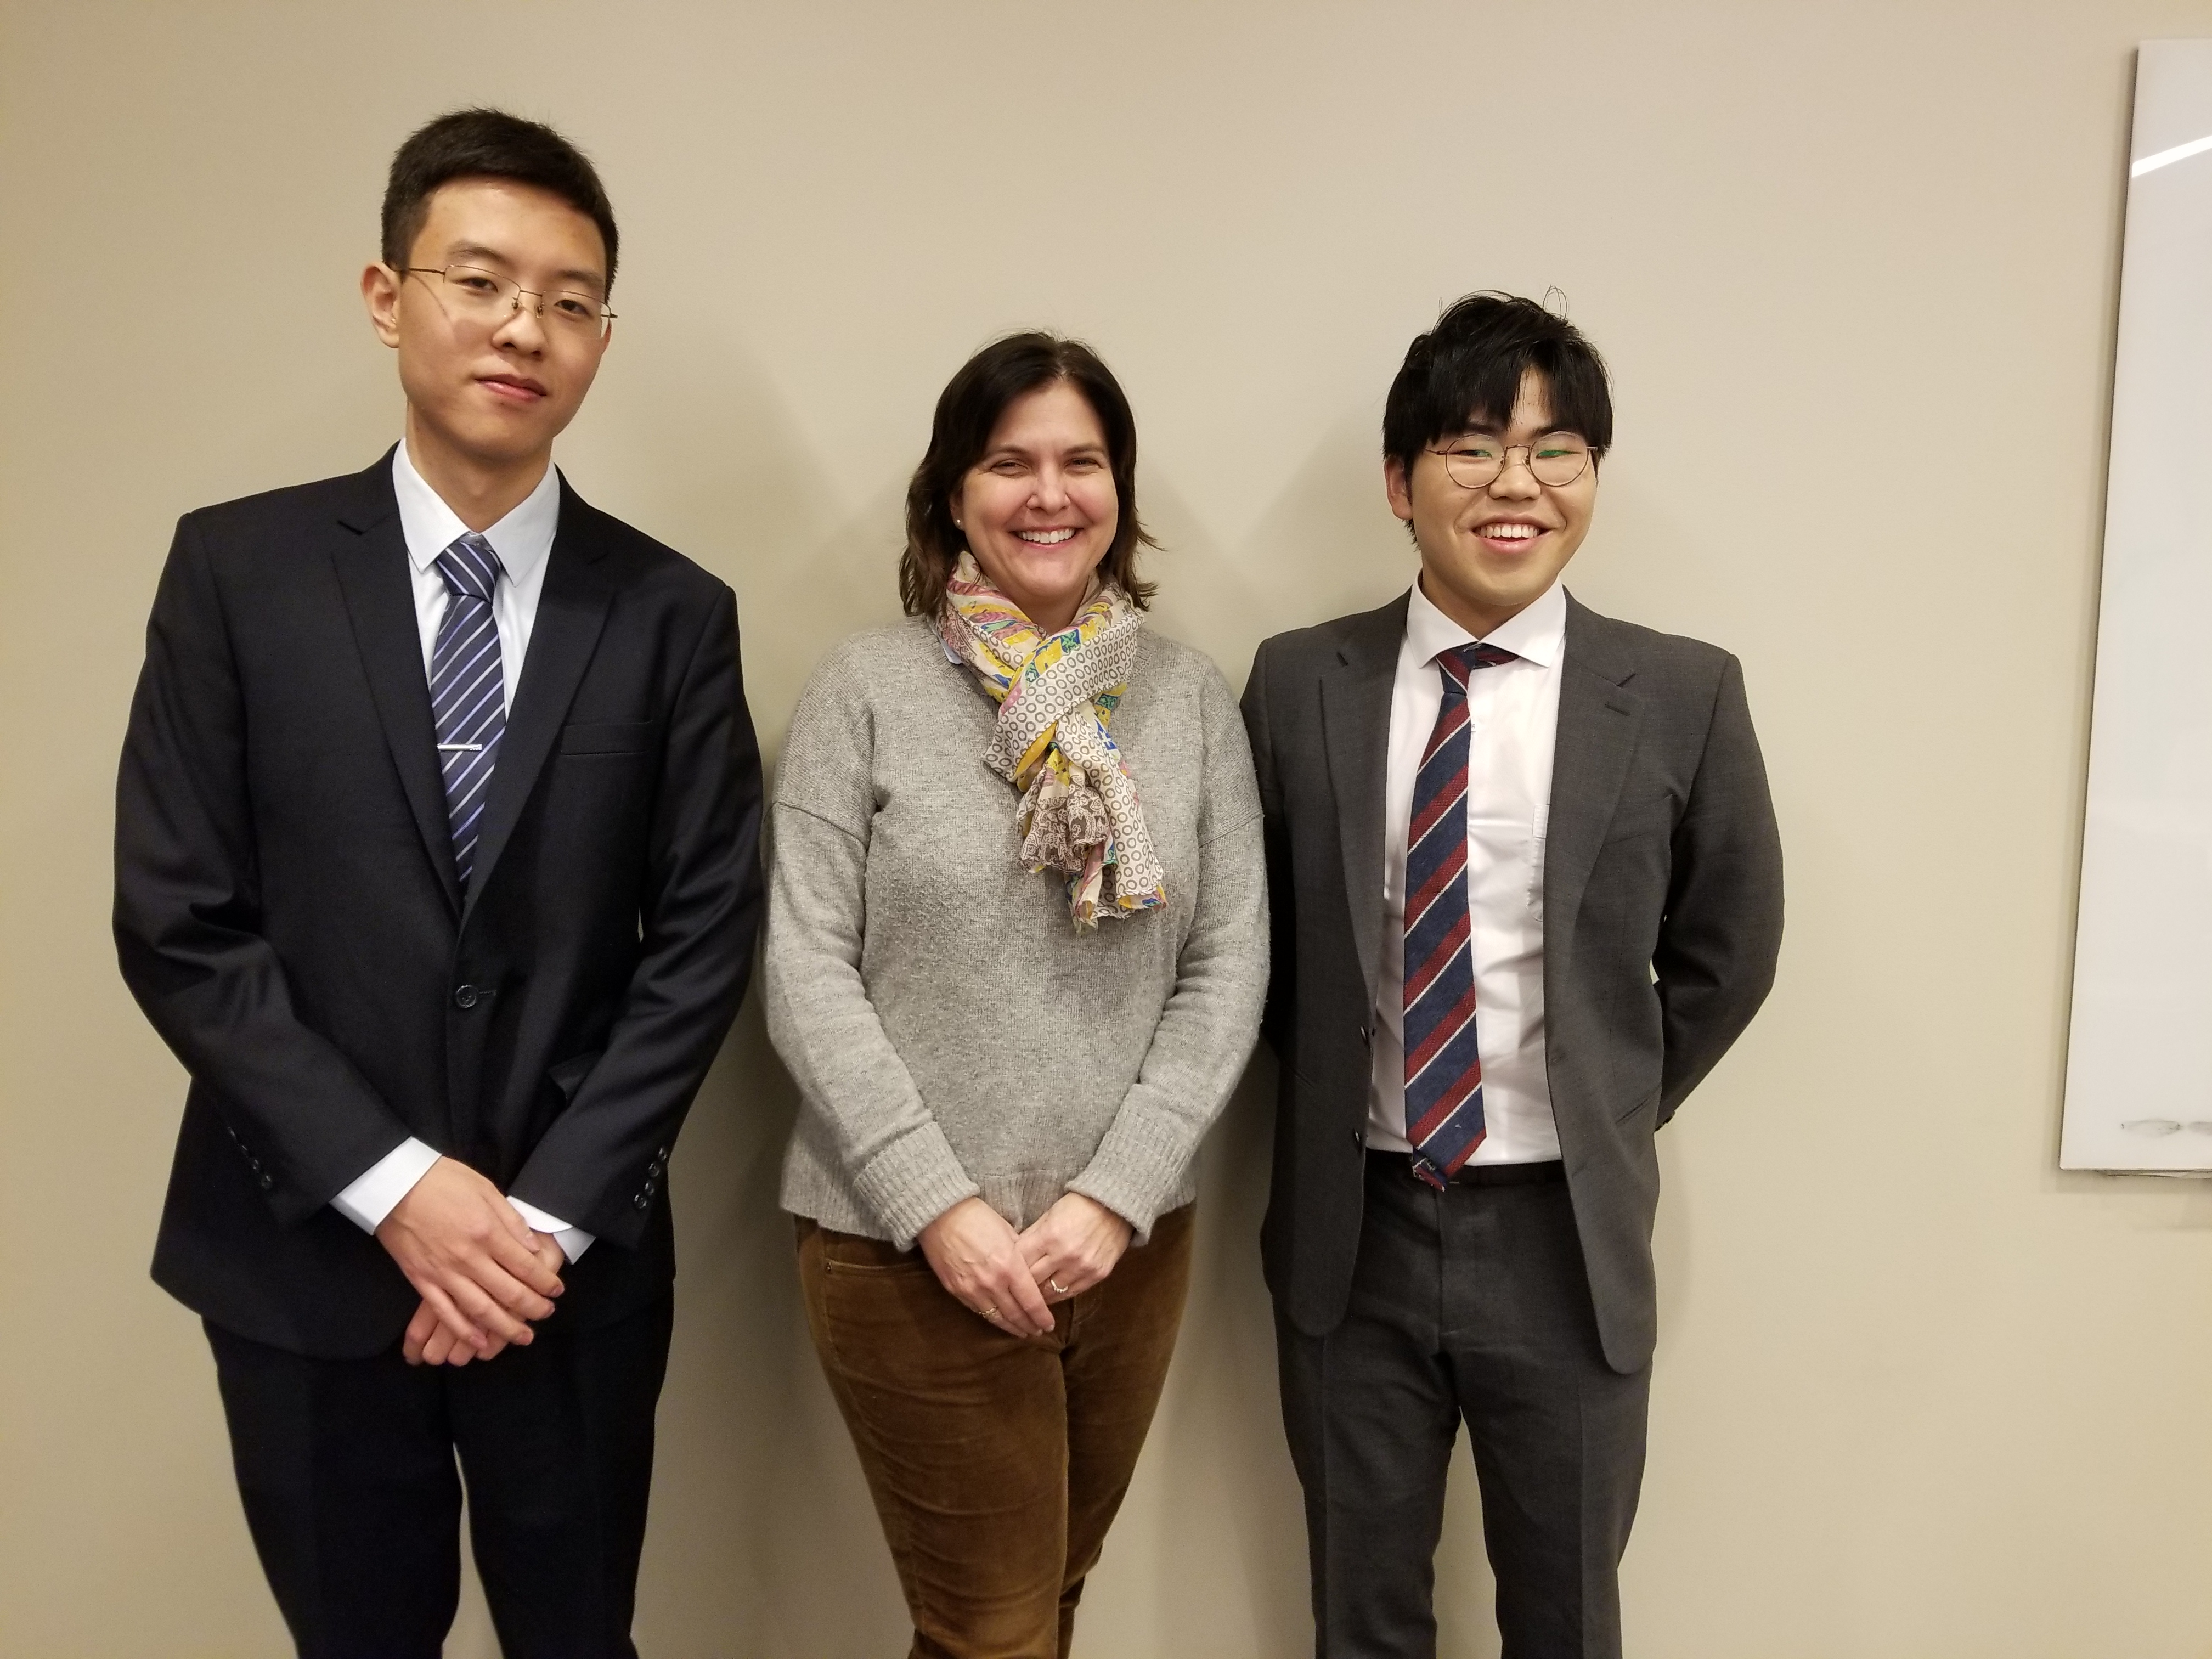 Professor Kathryn Lavelle with her two advisees, Lance Zhong and Yoon Lee